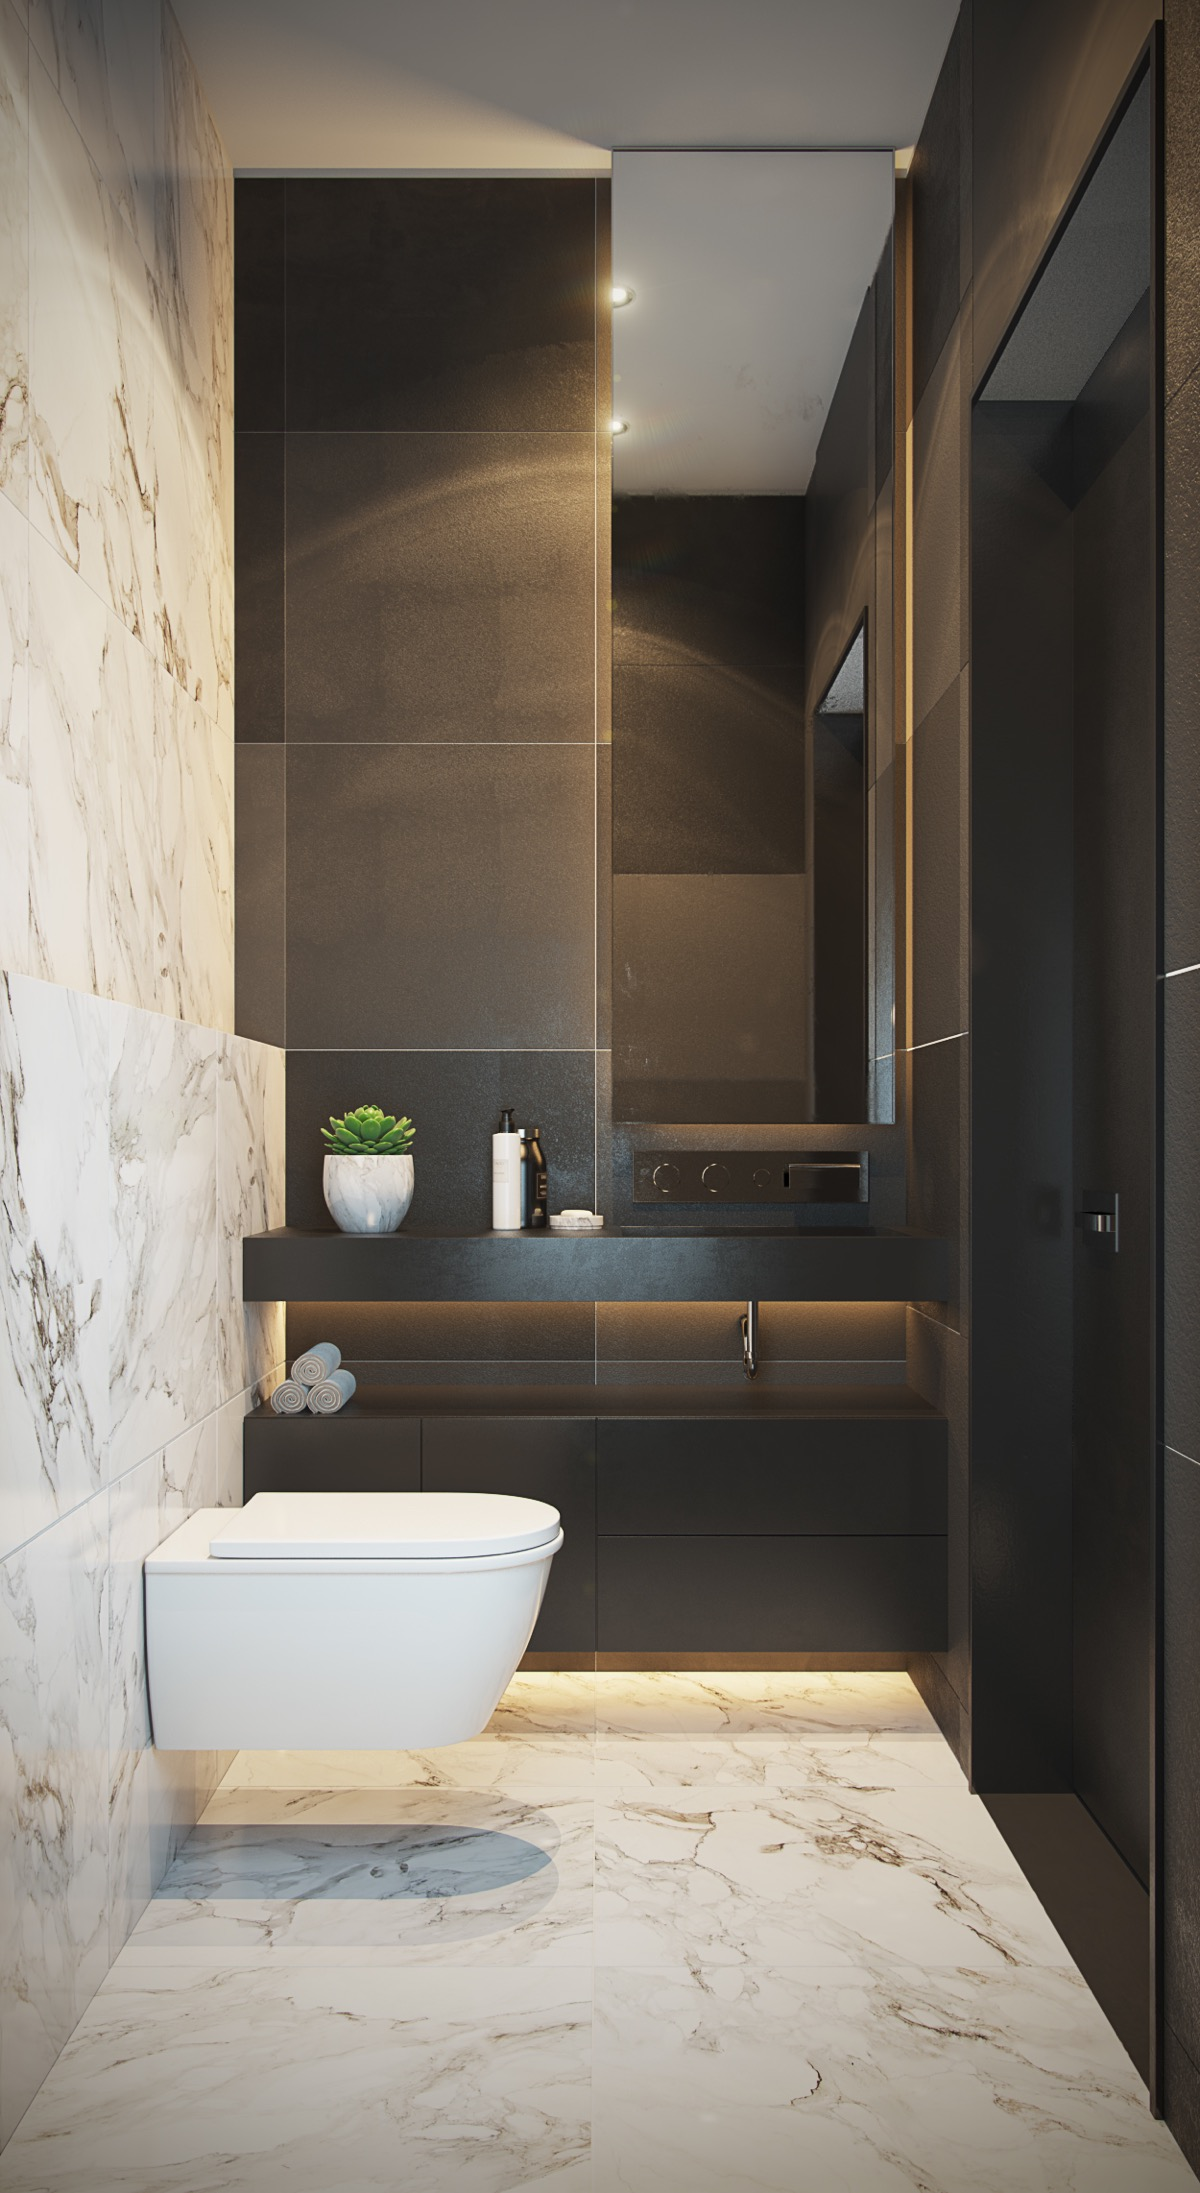 title | Small Minimalist Bathroom